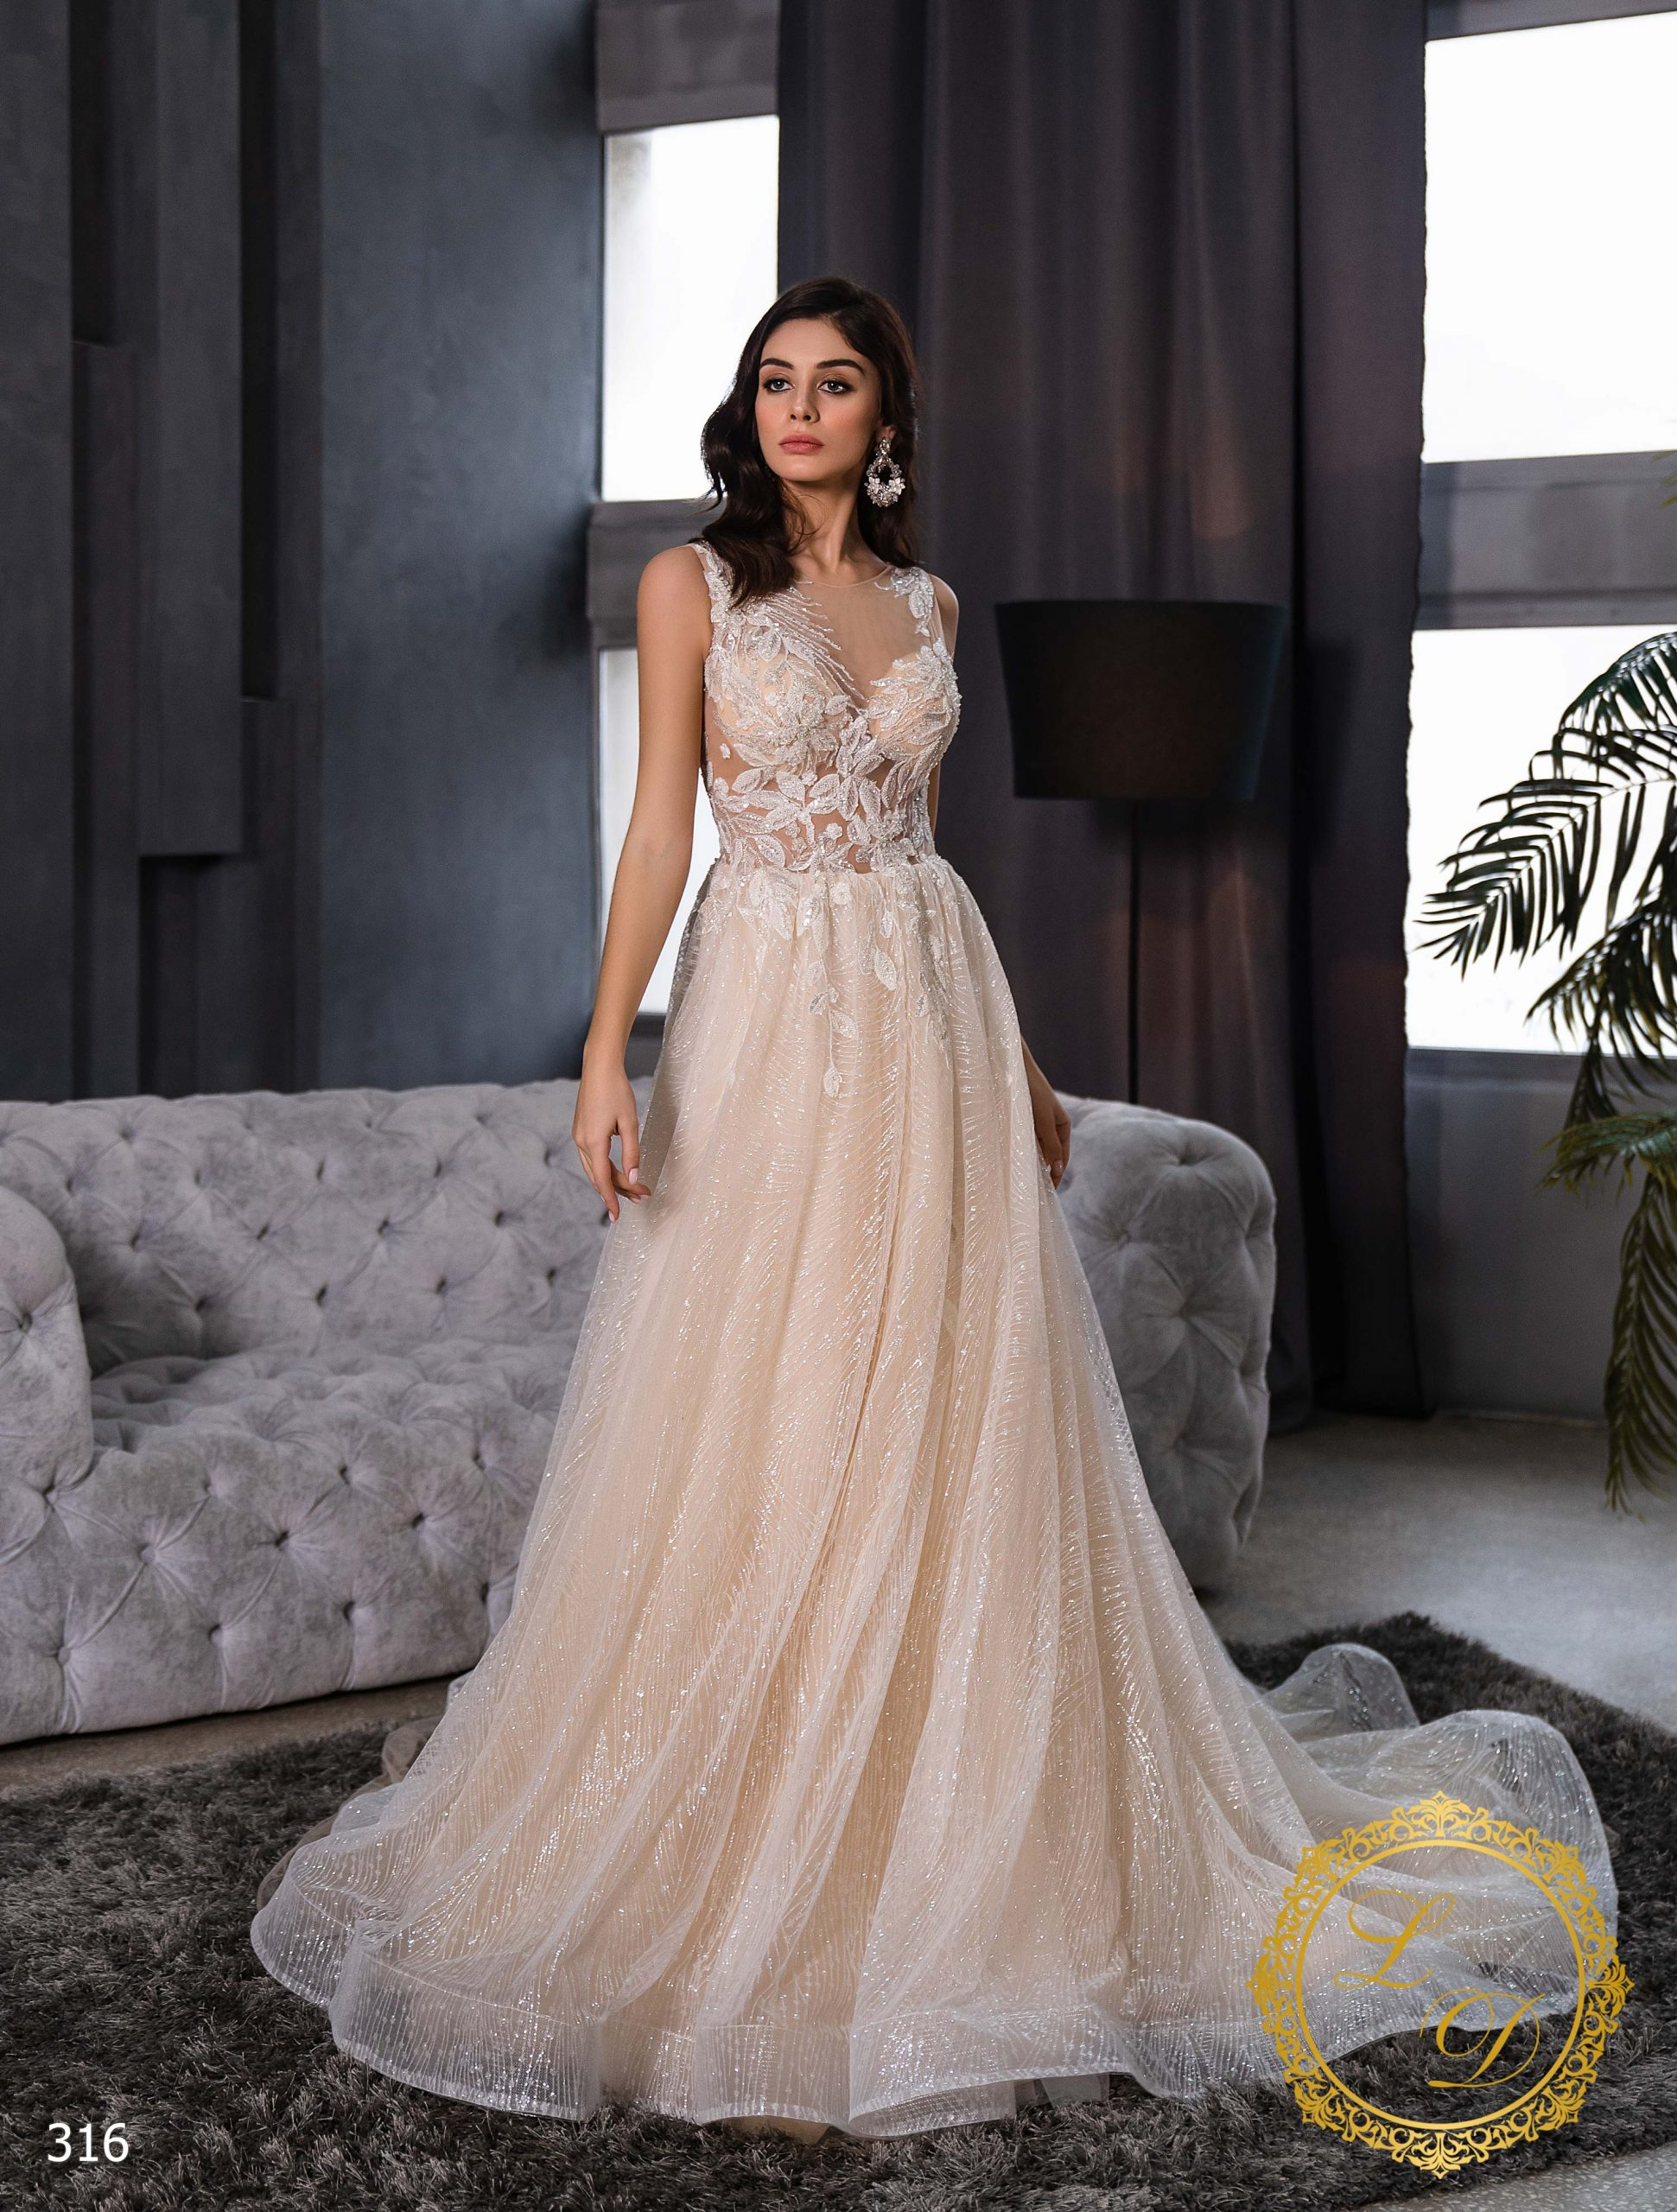 Wedding Dress Lady Di 316-1